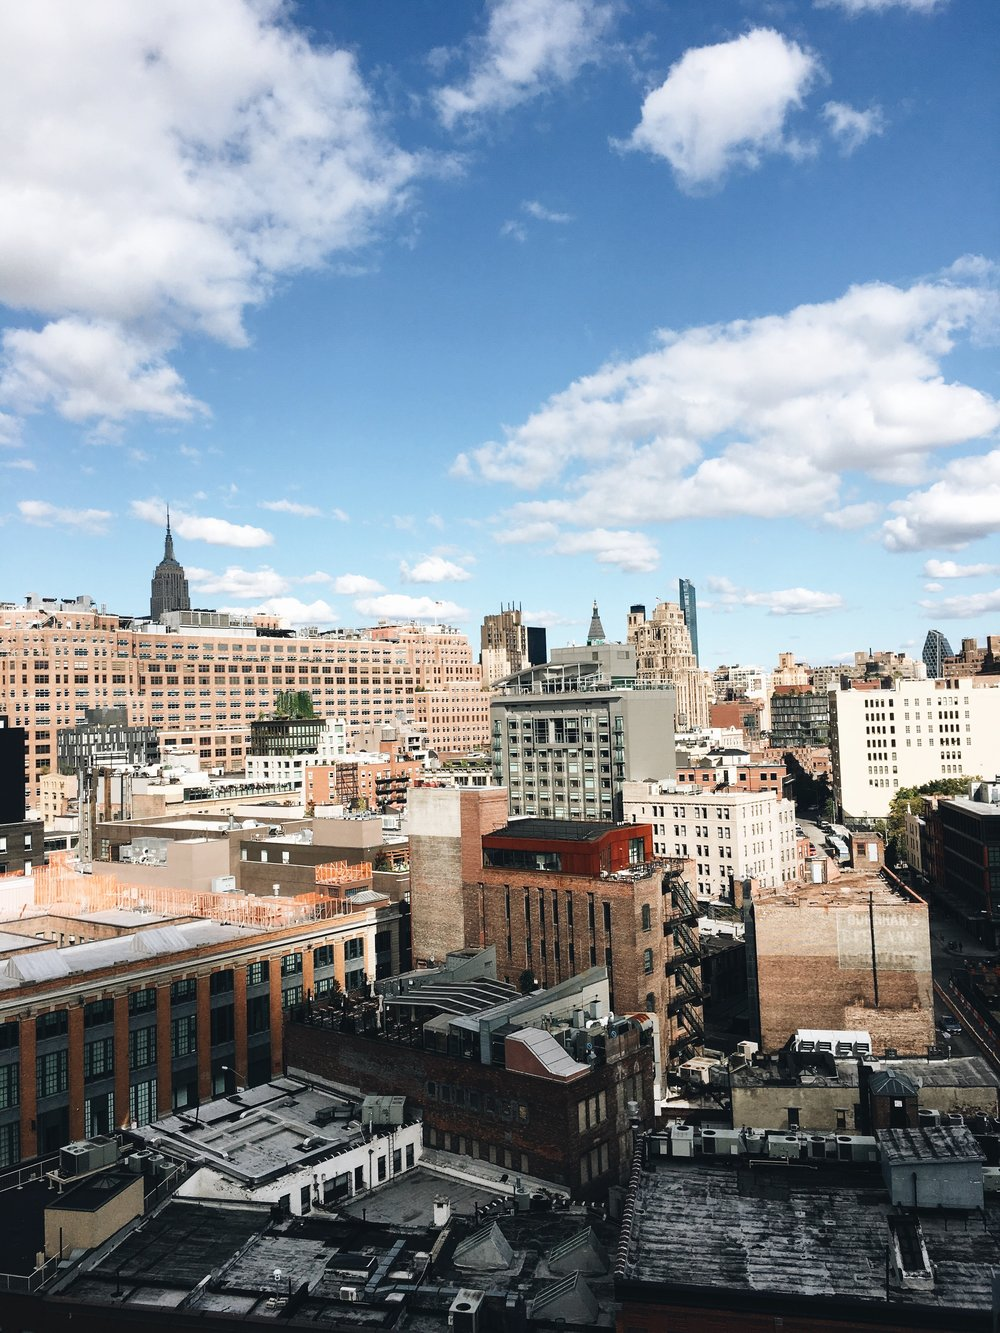 Many NYC trips later and this was my first time to the Whitney Museum. Of course, the views from the restaurant balcony are Instagram worthy.